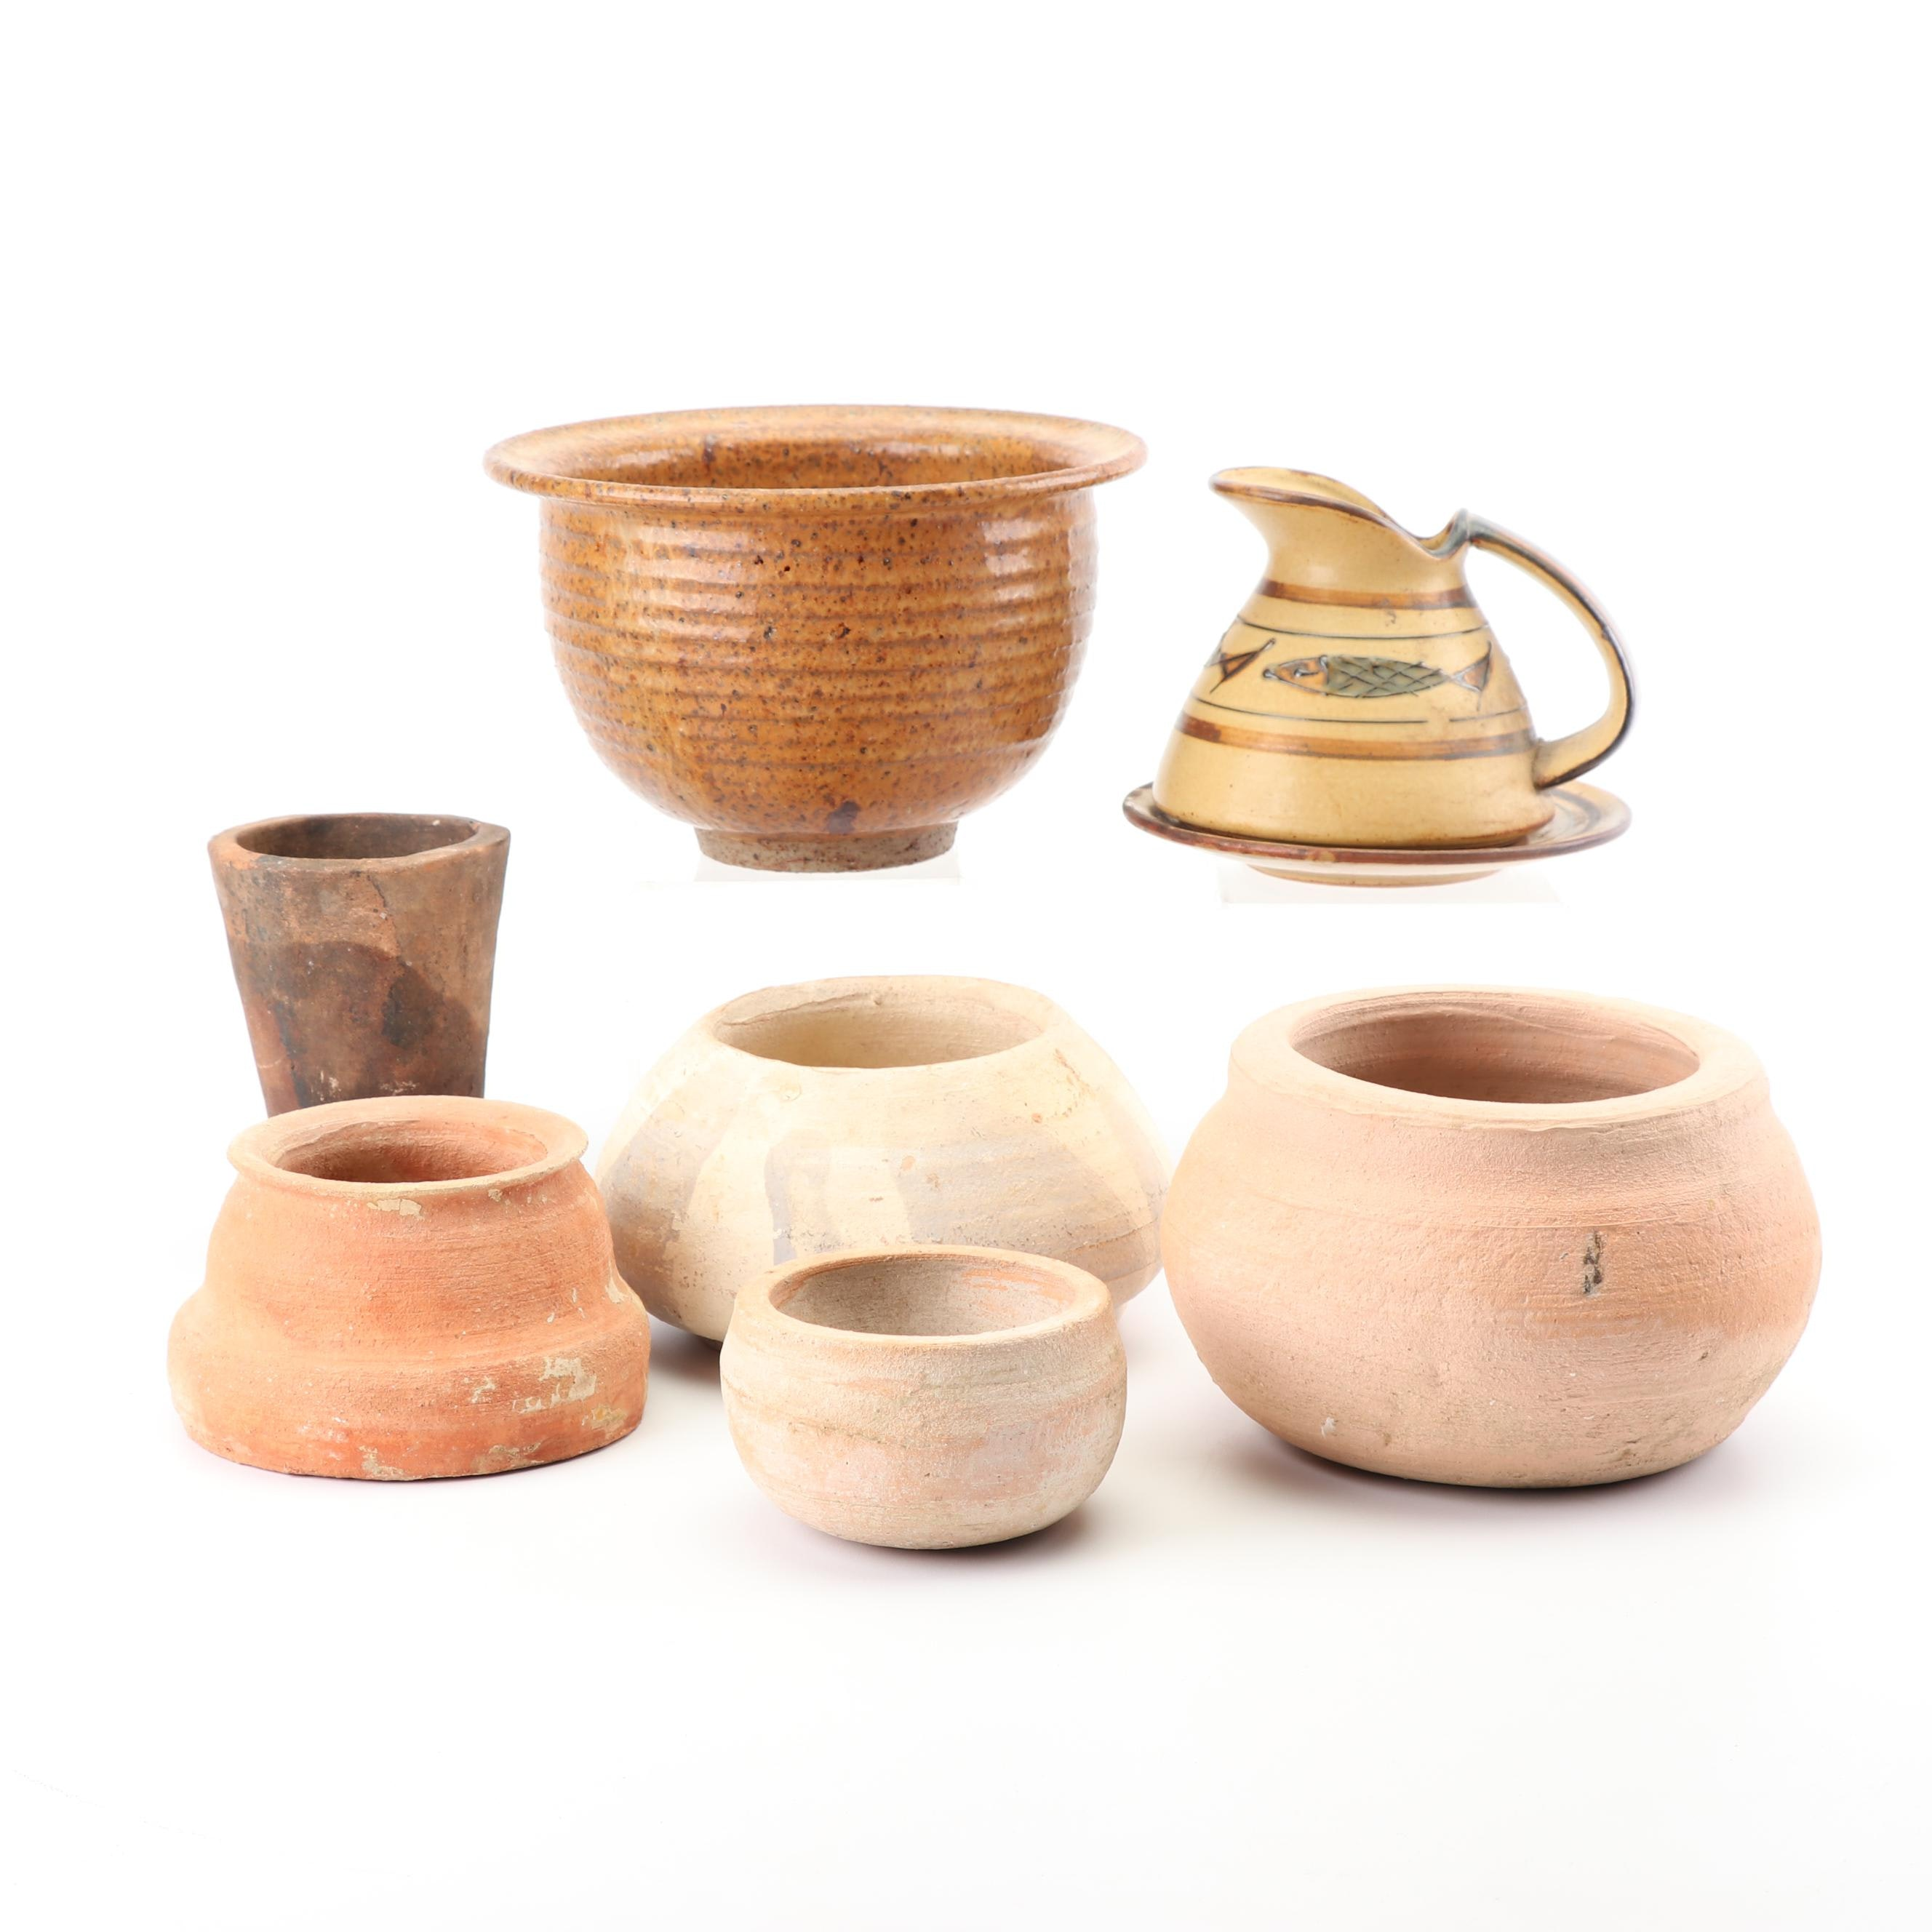 Terracotta and Stoneware Planters with Ceramic Pitcher